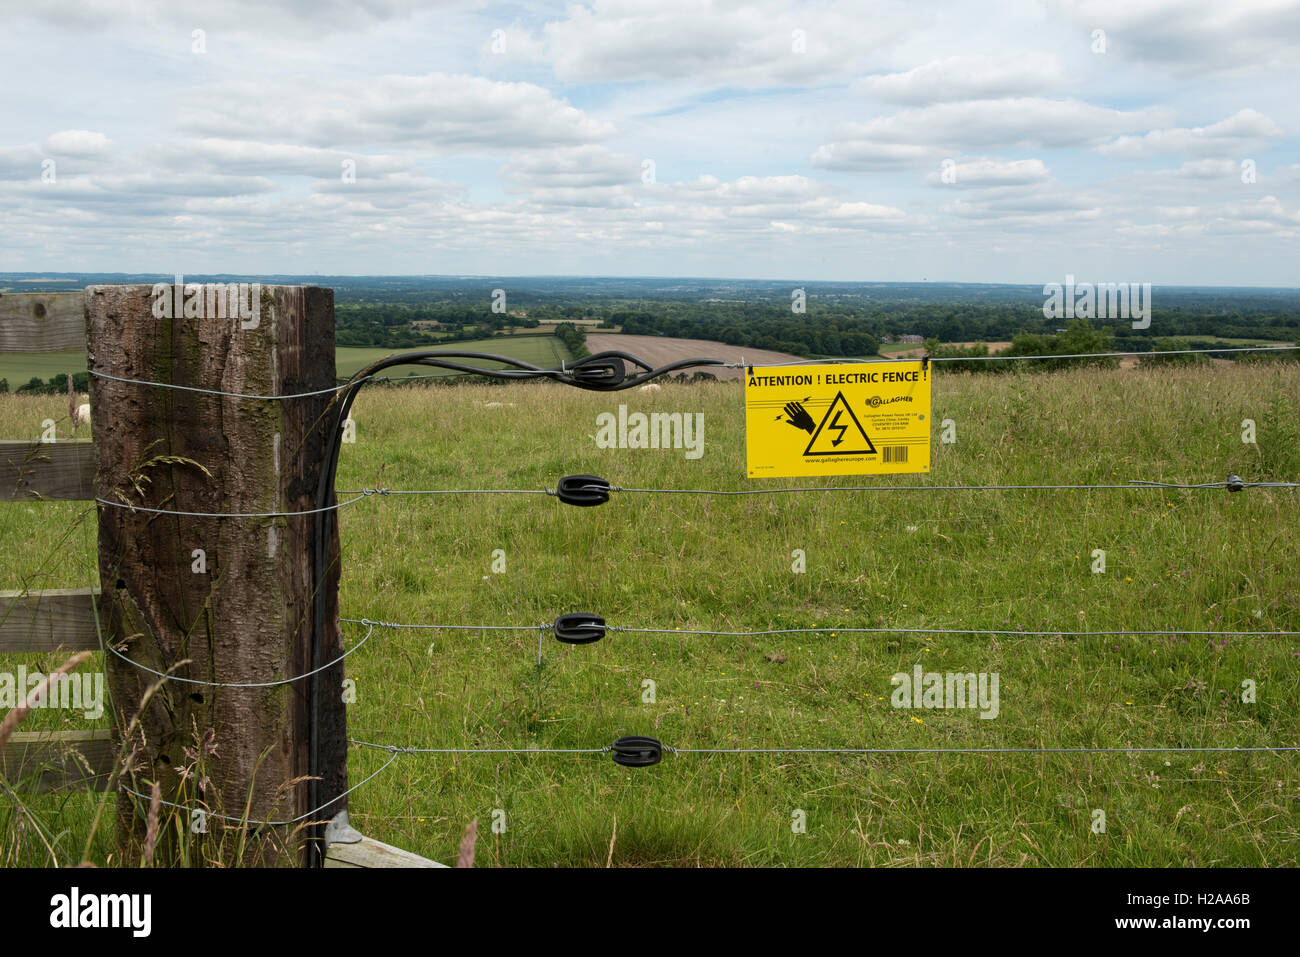 Large post with strung electric fence, insulators and warning sign for a shhep field on the Berkshire downs, July - Stock Image